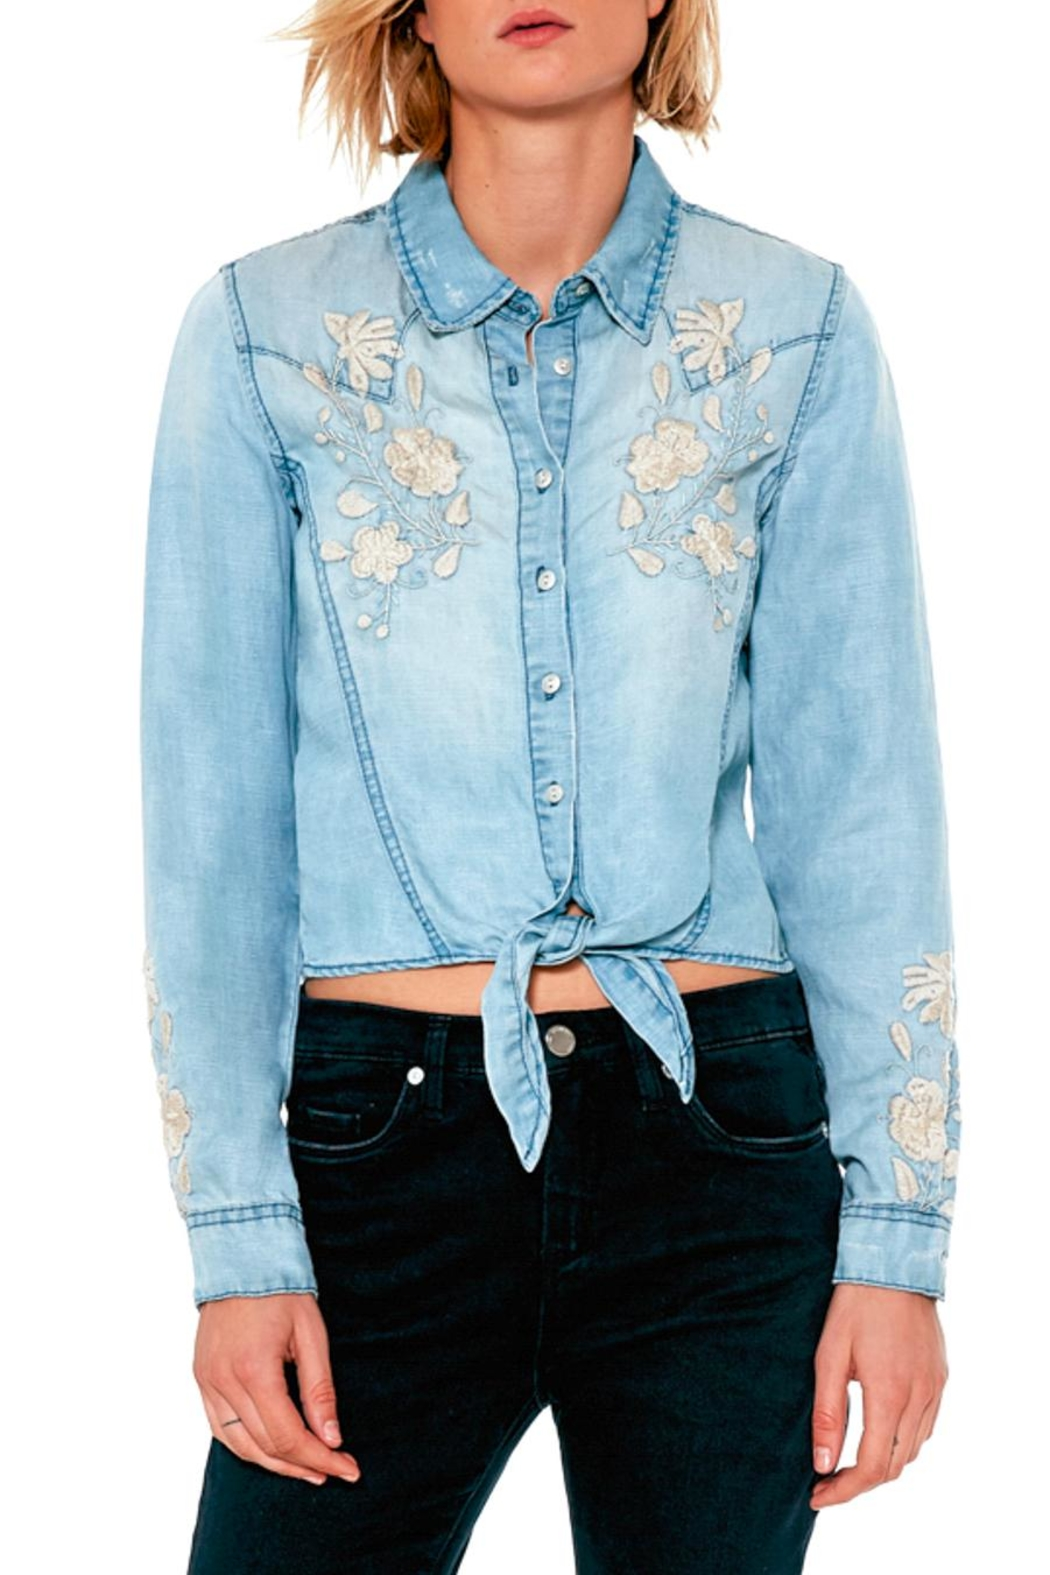 BlankNYC Embroidered Knotted Top - Main Image